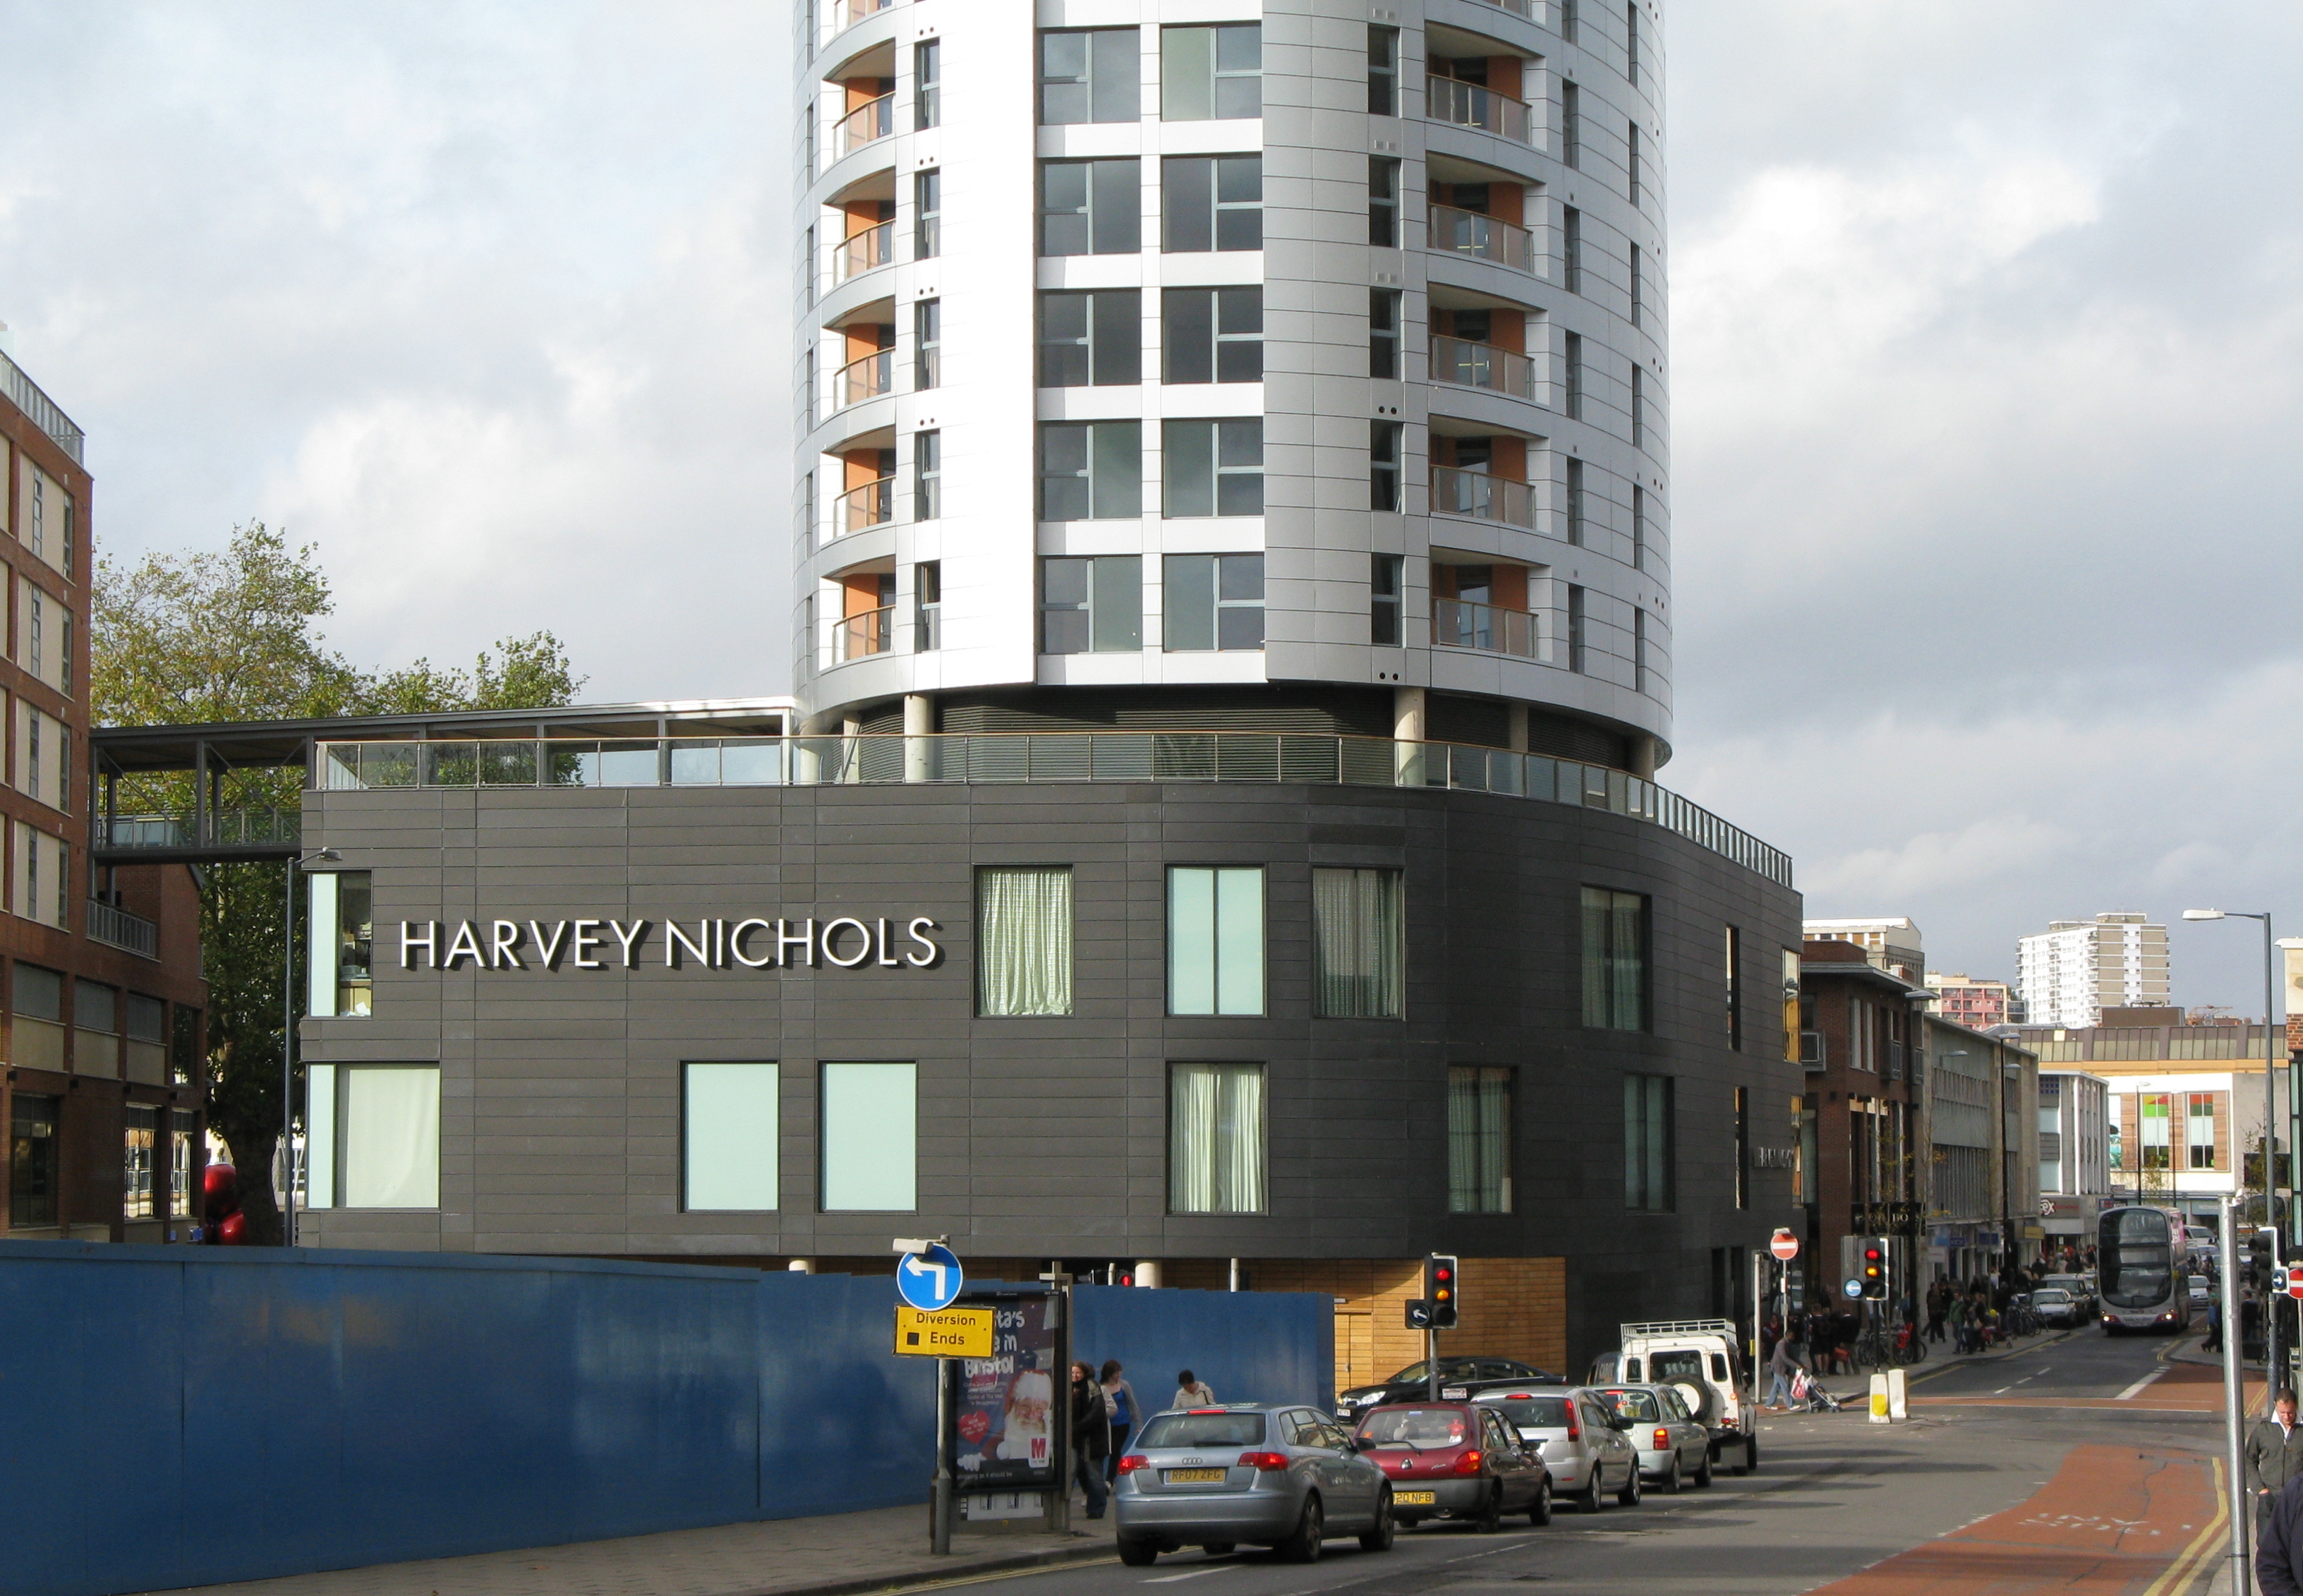 file harvey nichols store in bristol wikimedia commons. Black Bedroom Furniture Sets. Home Design Ideas